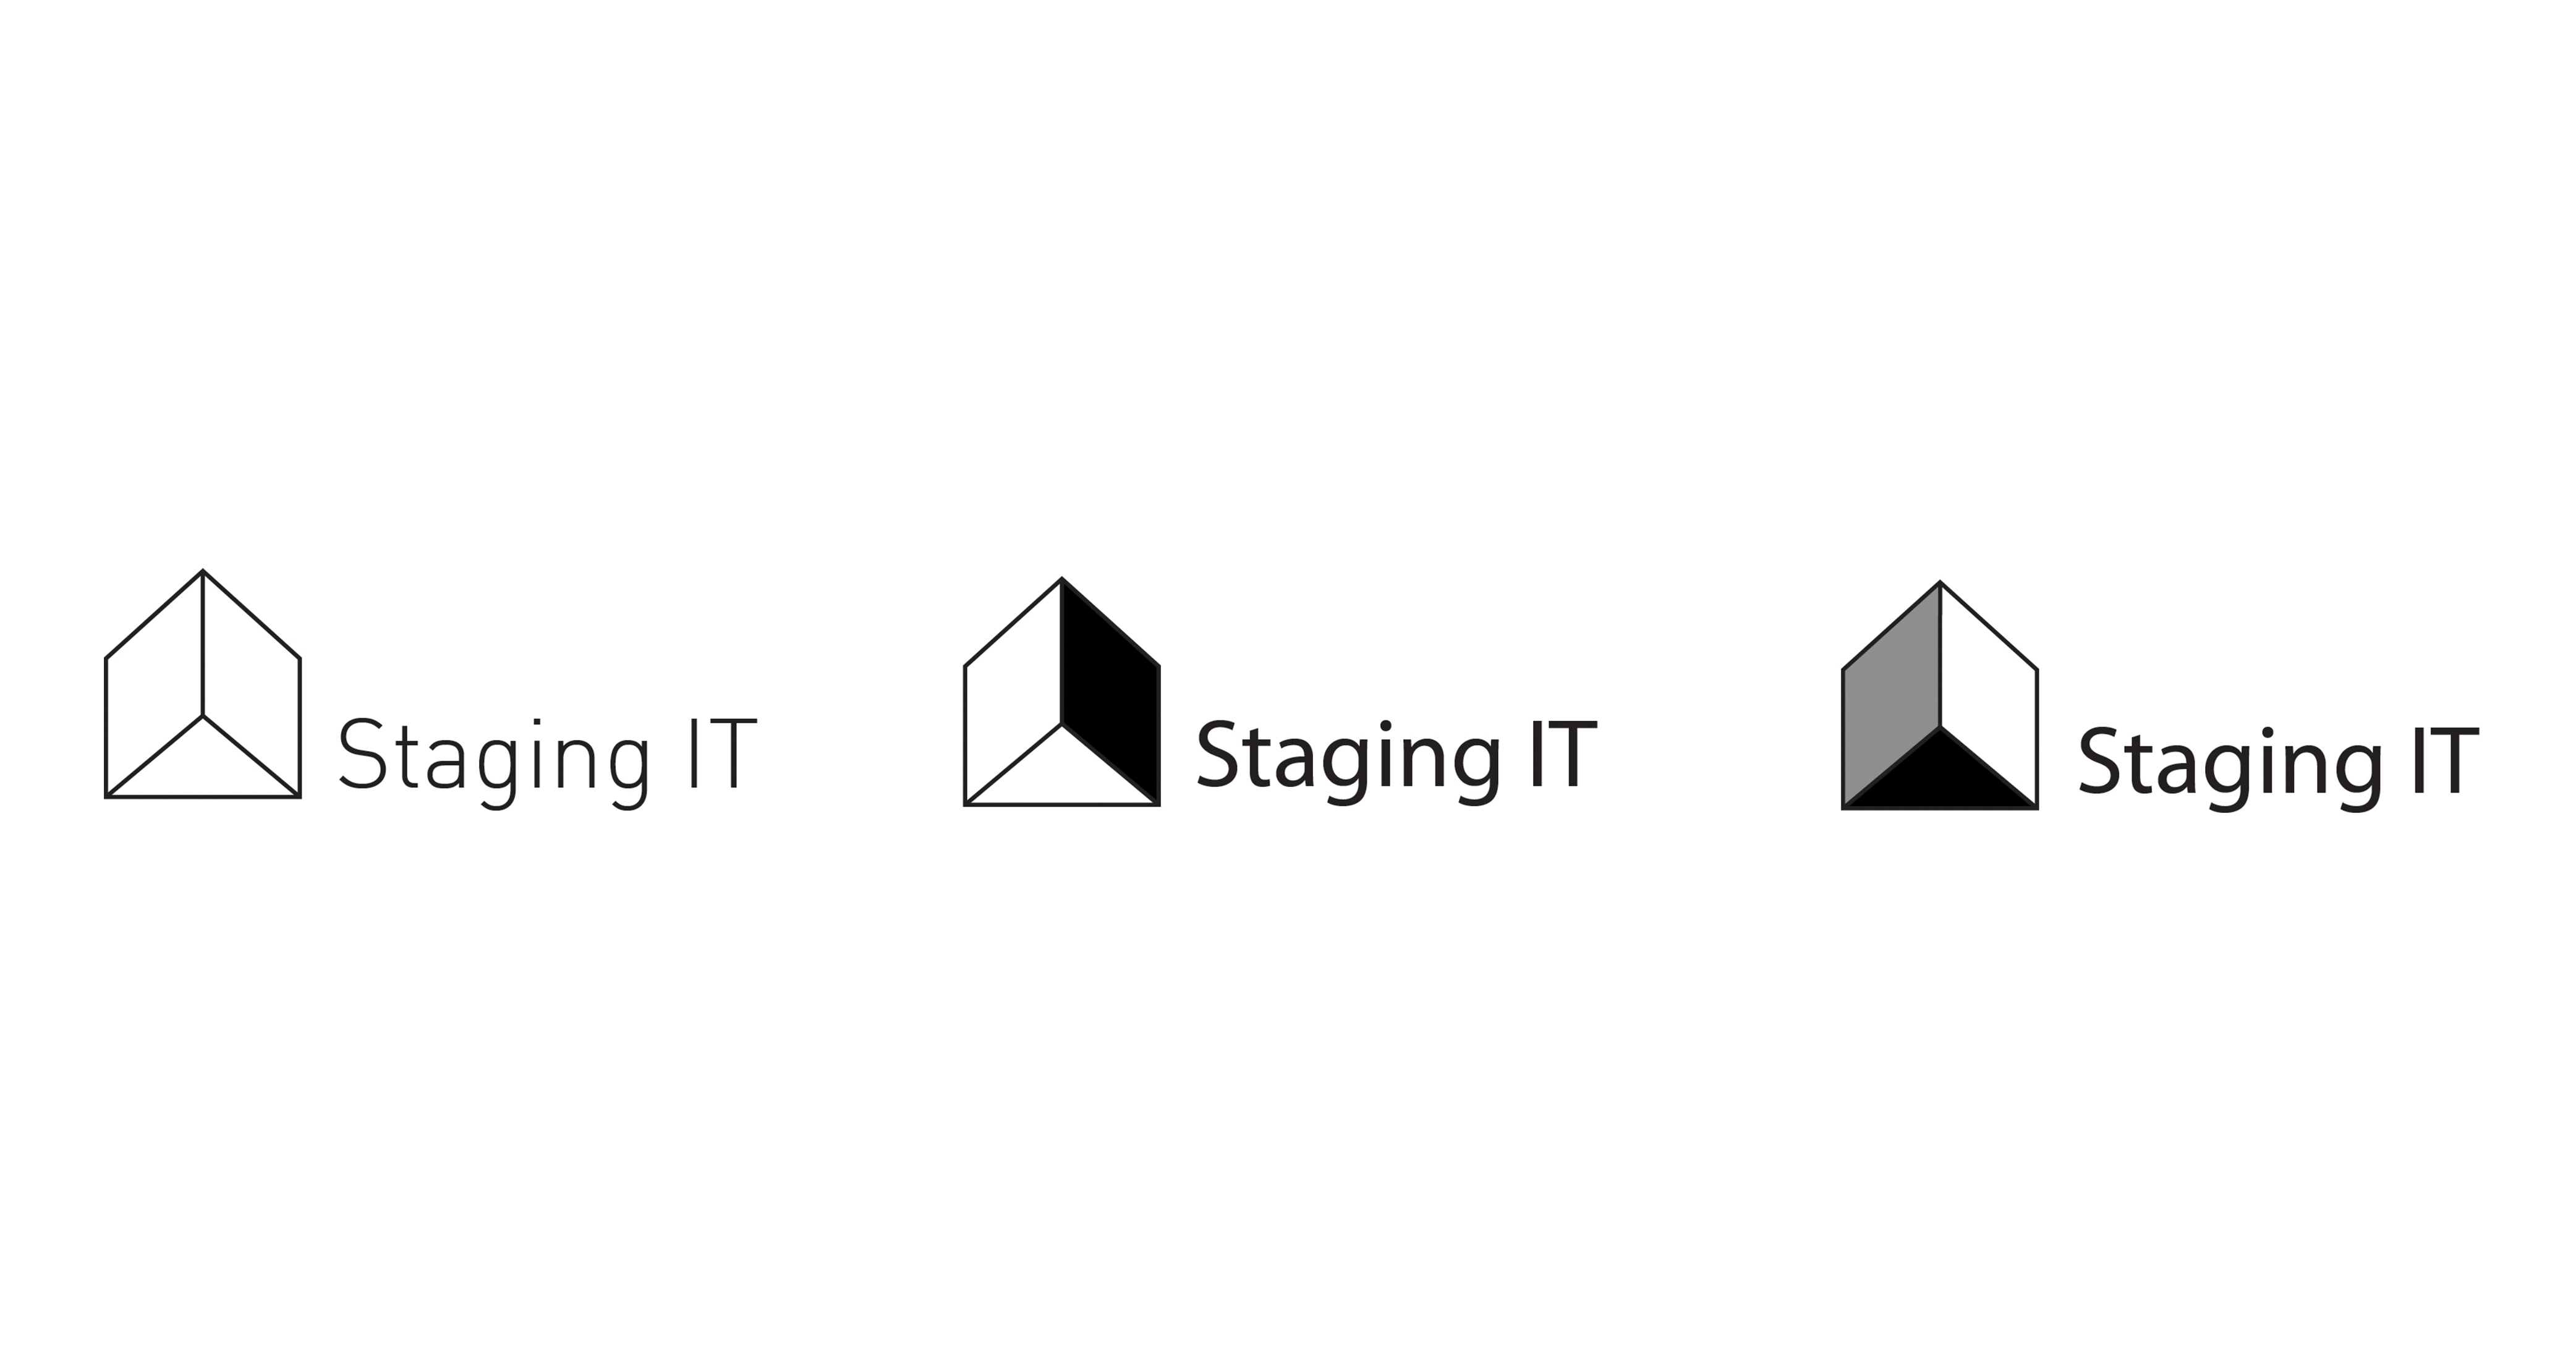 Staging-IT